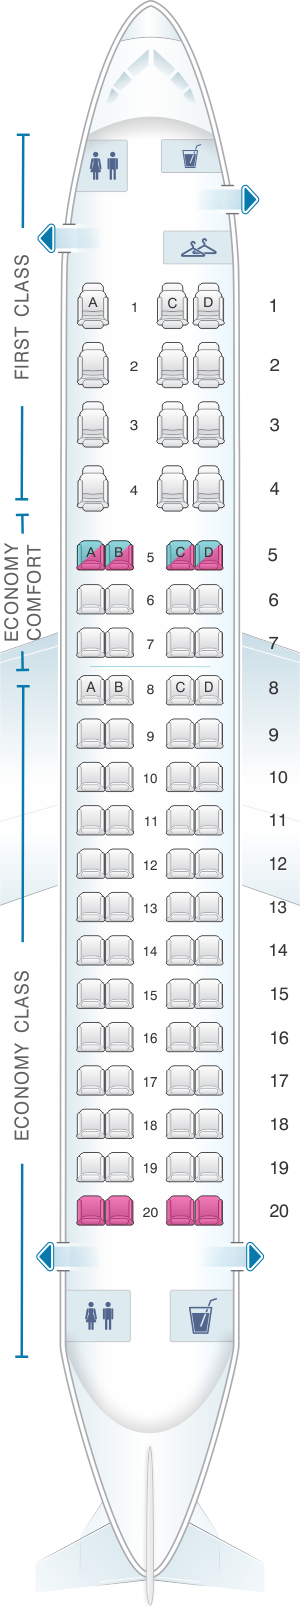 Seat map for Delta Airlines Embraer 175